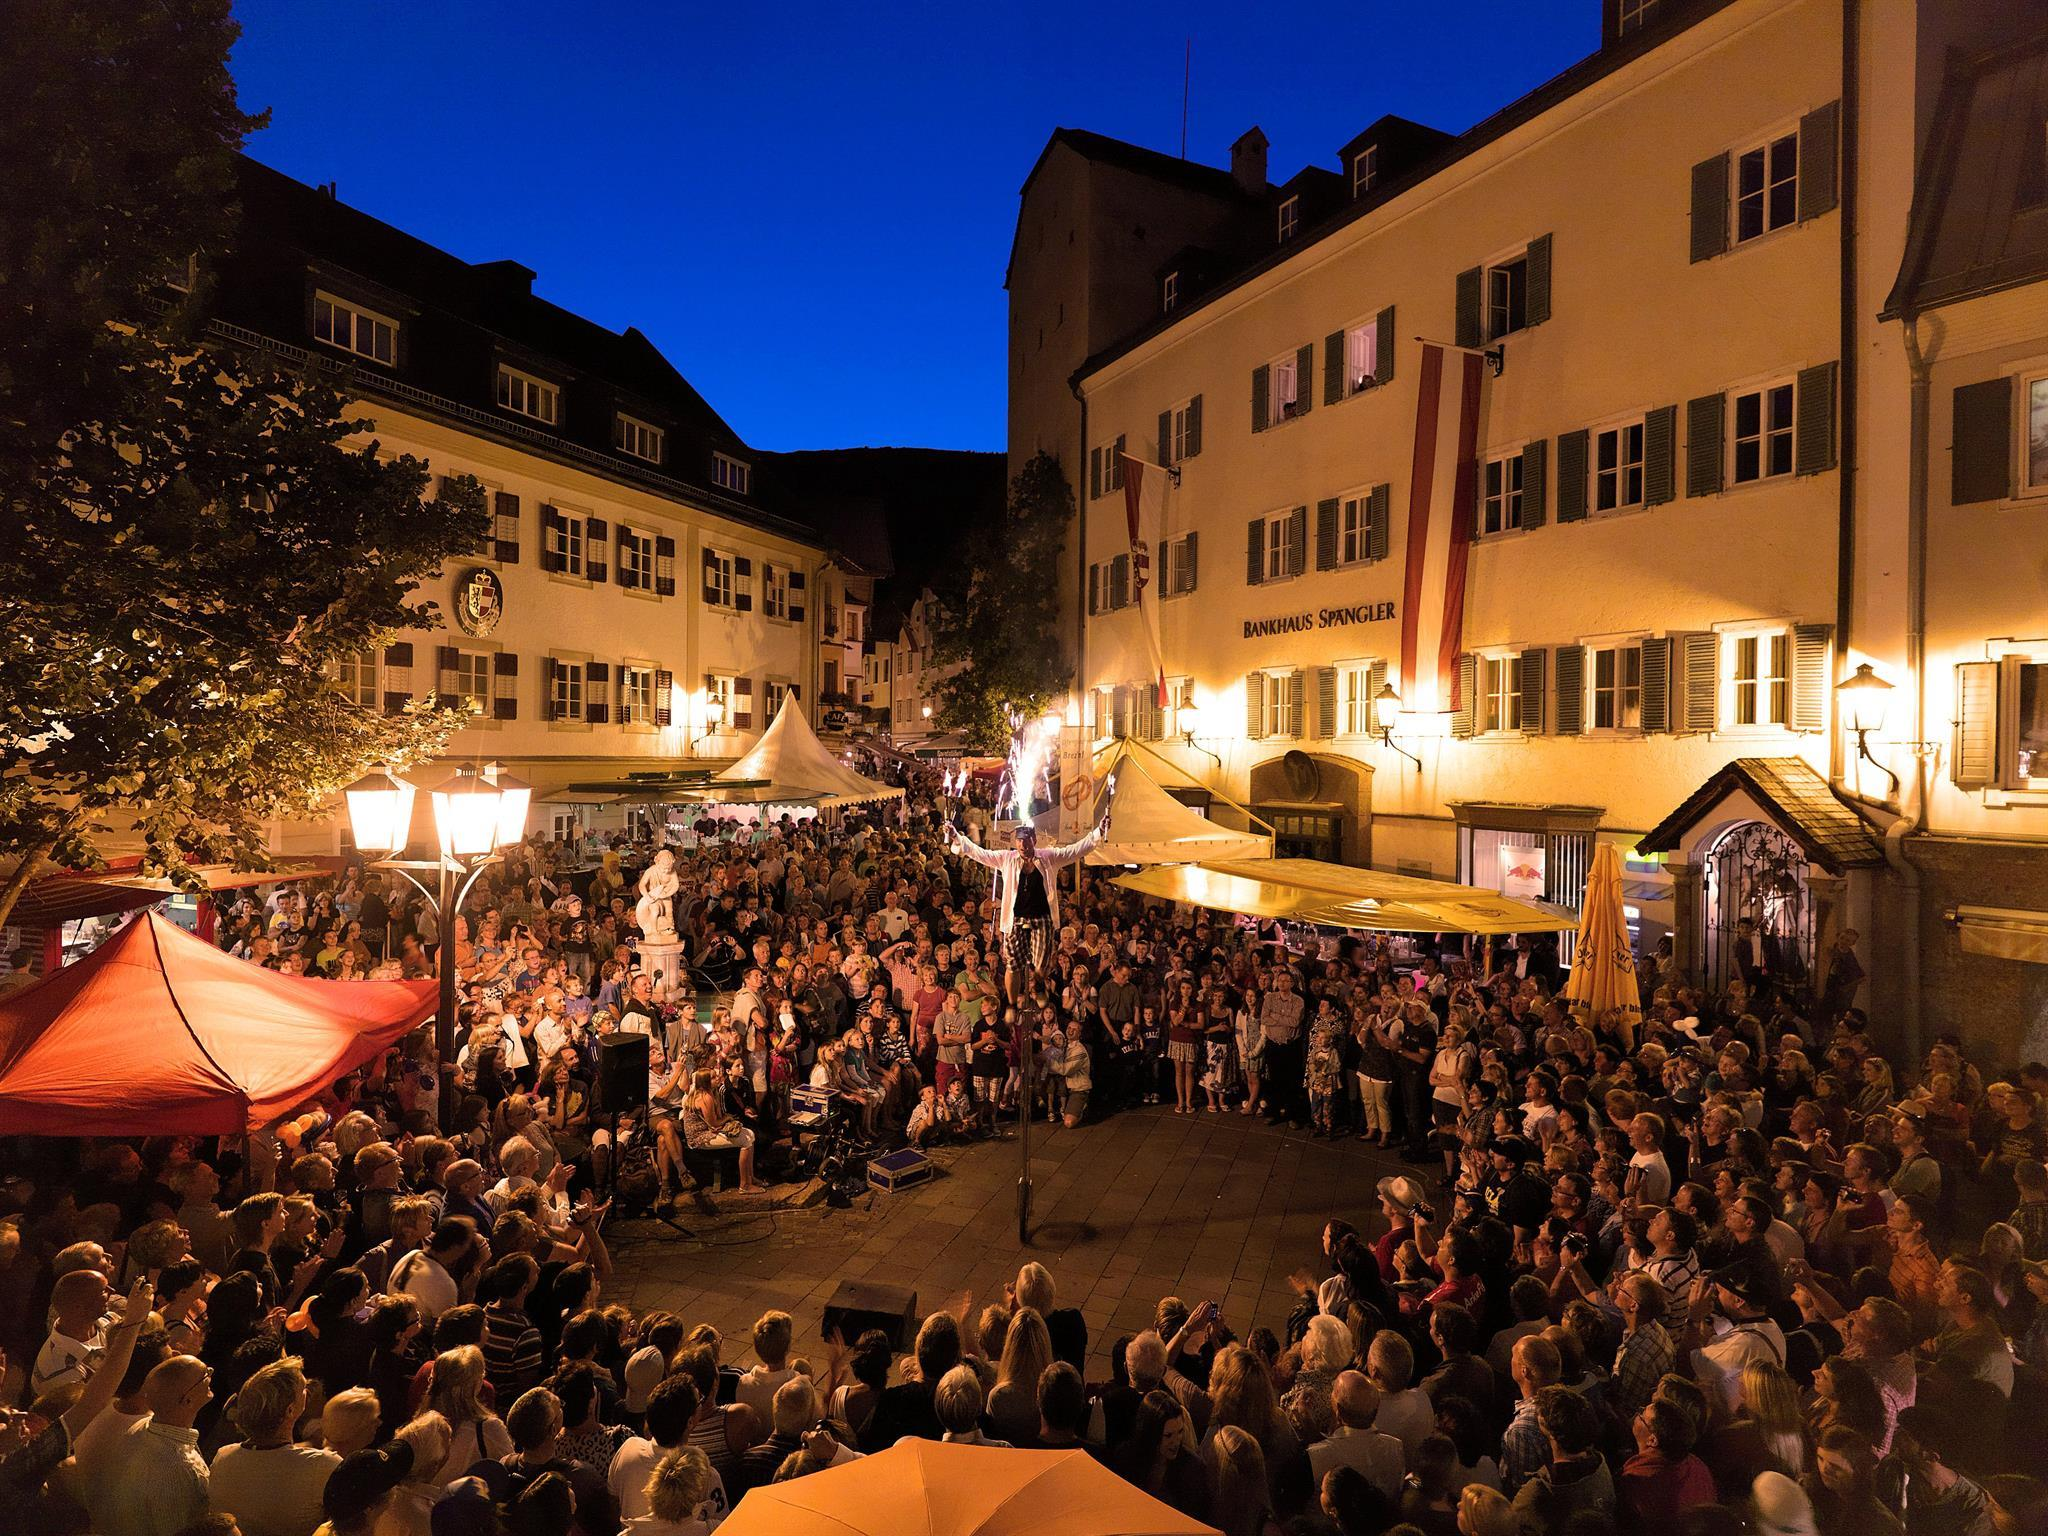 Zell SummerNightFestival - 08/07/2020, from 7:00 PM